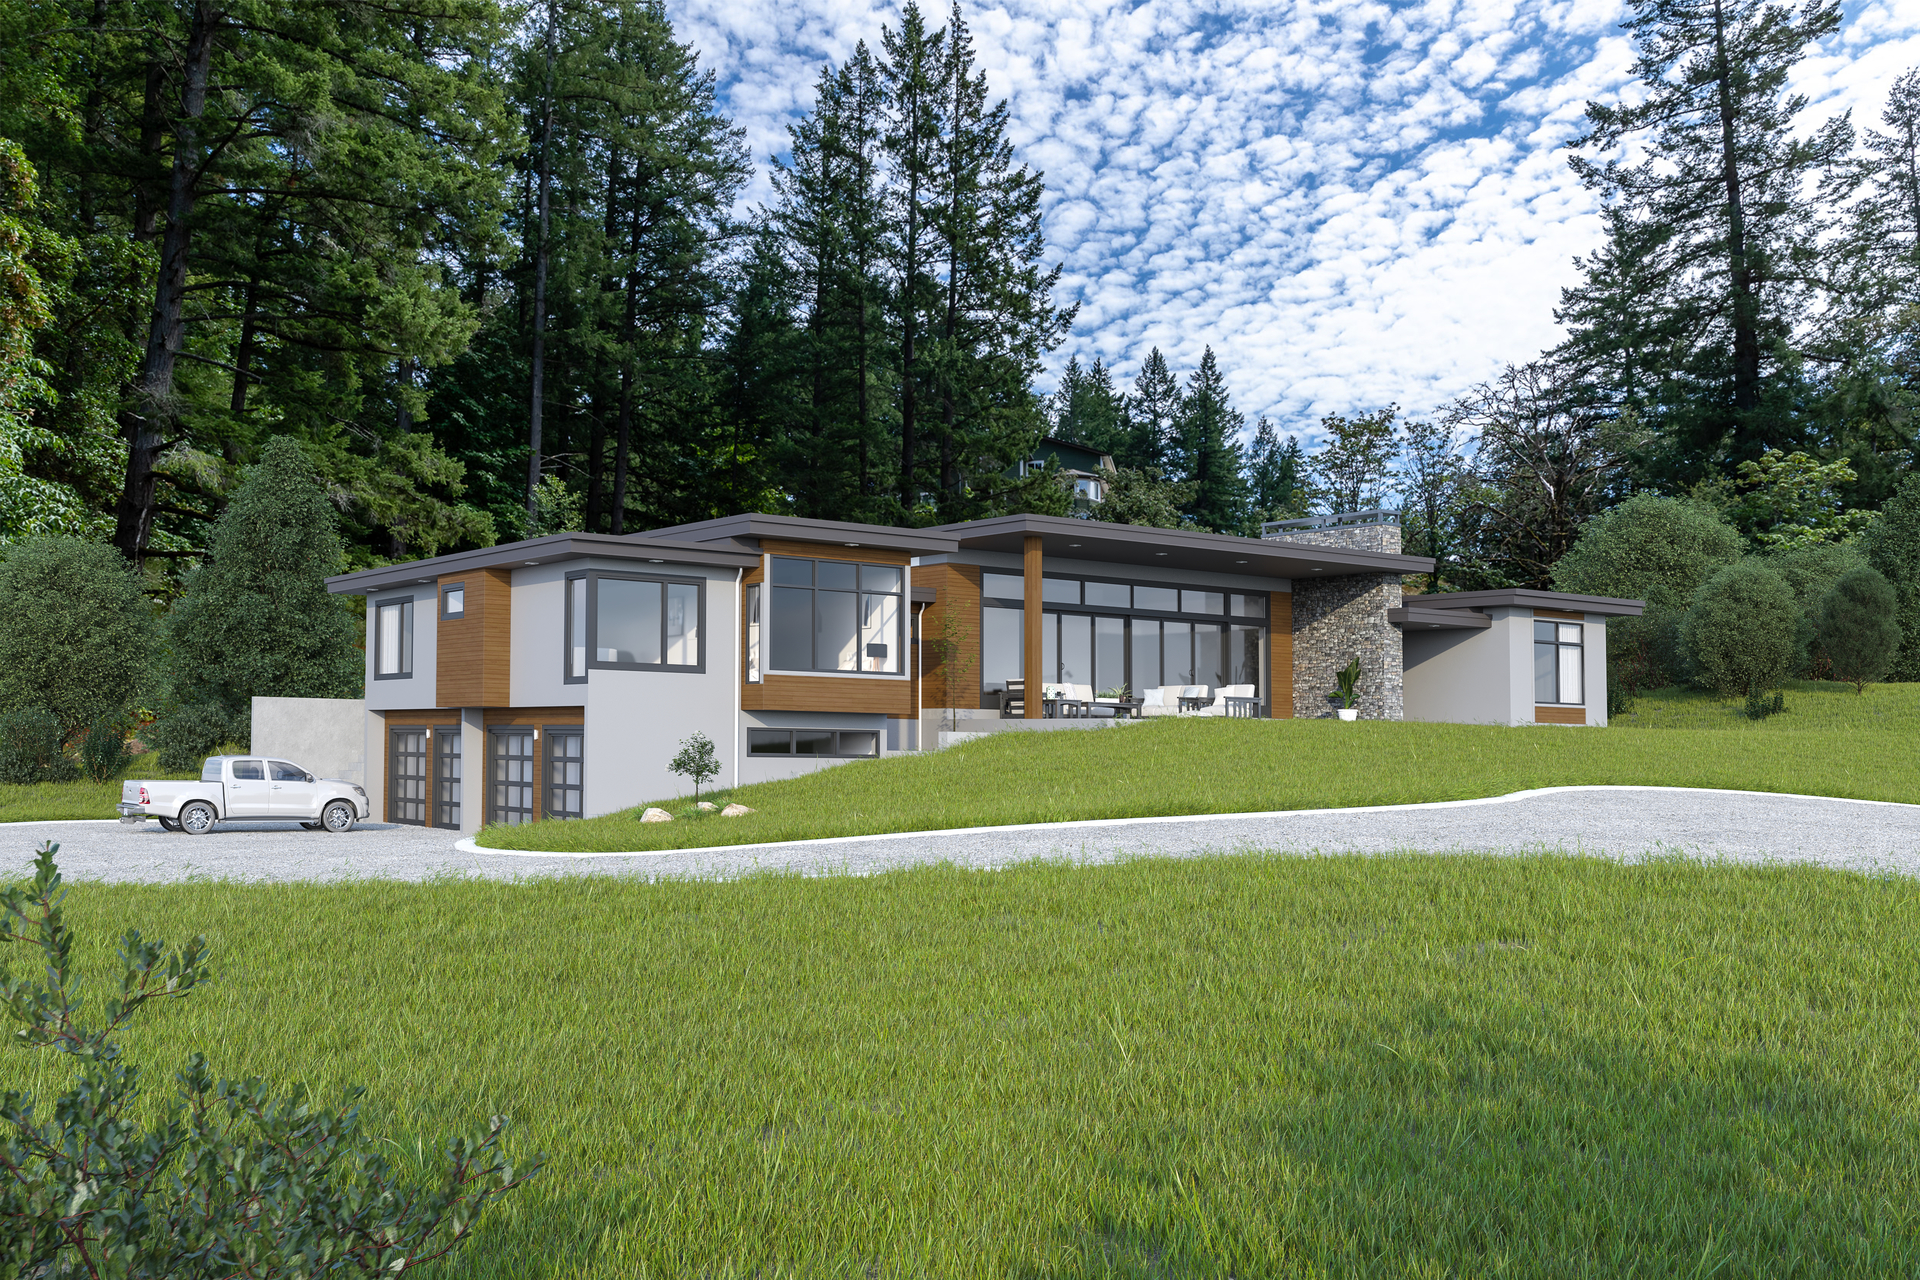 5100 Jagtar's Way - Currently Under Construction: Artist Rendering, Not Exact To Finished Product at 5100 & 5101 Jagtar's Way, Prospect Lake, Saanich West